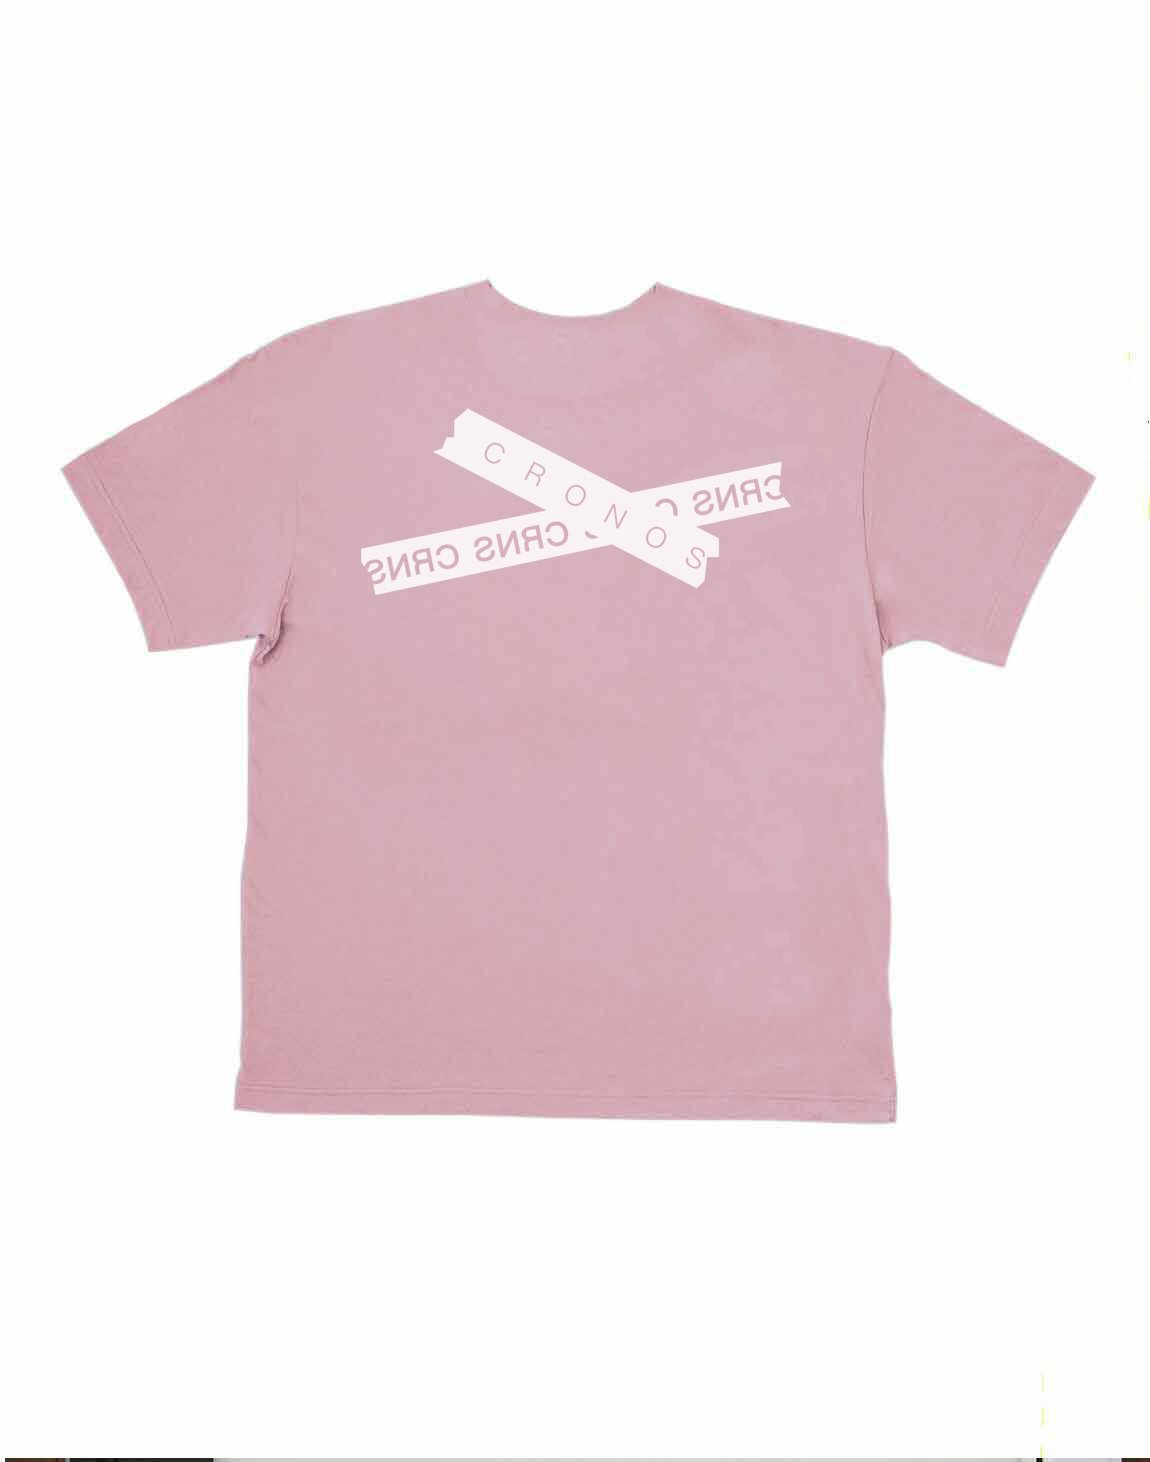 CRONOS TAPE LOGO OVER SIZE T-SHIRTS【PINK】